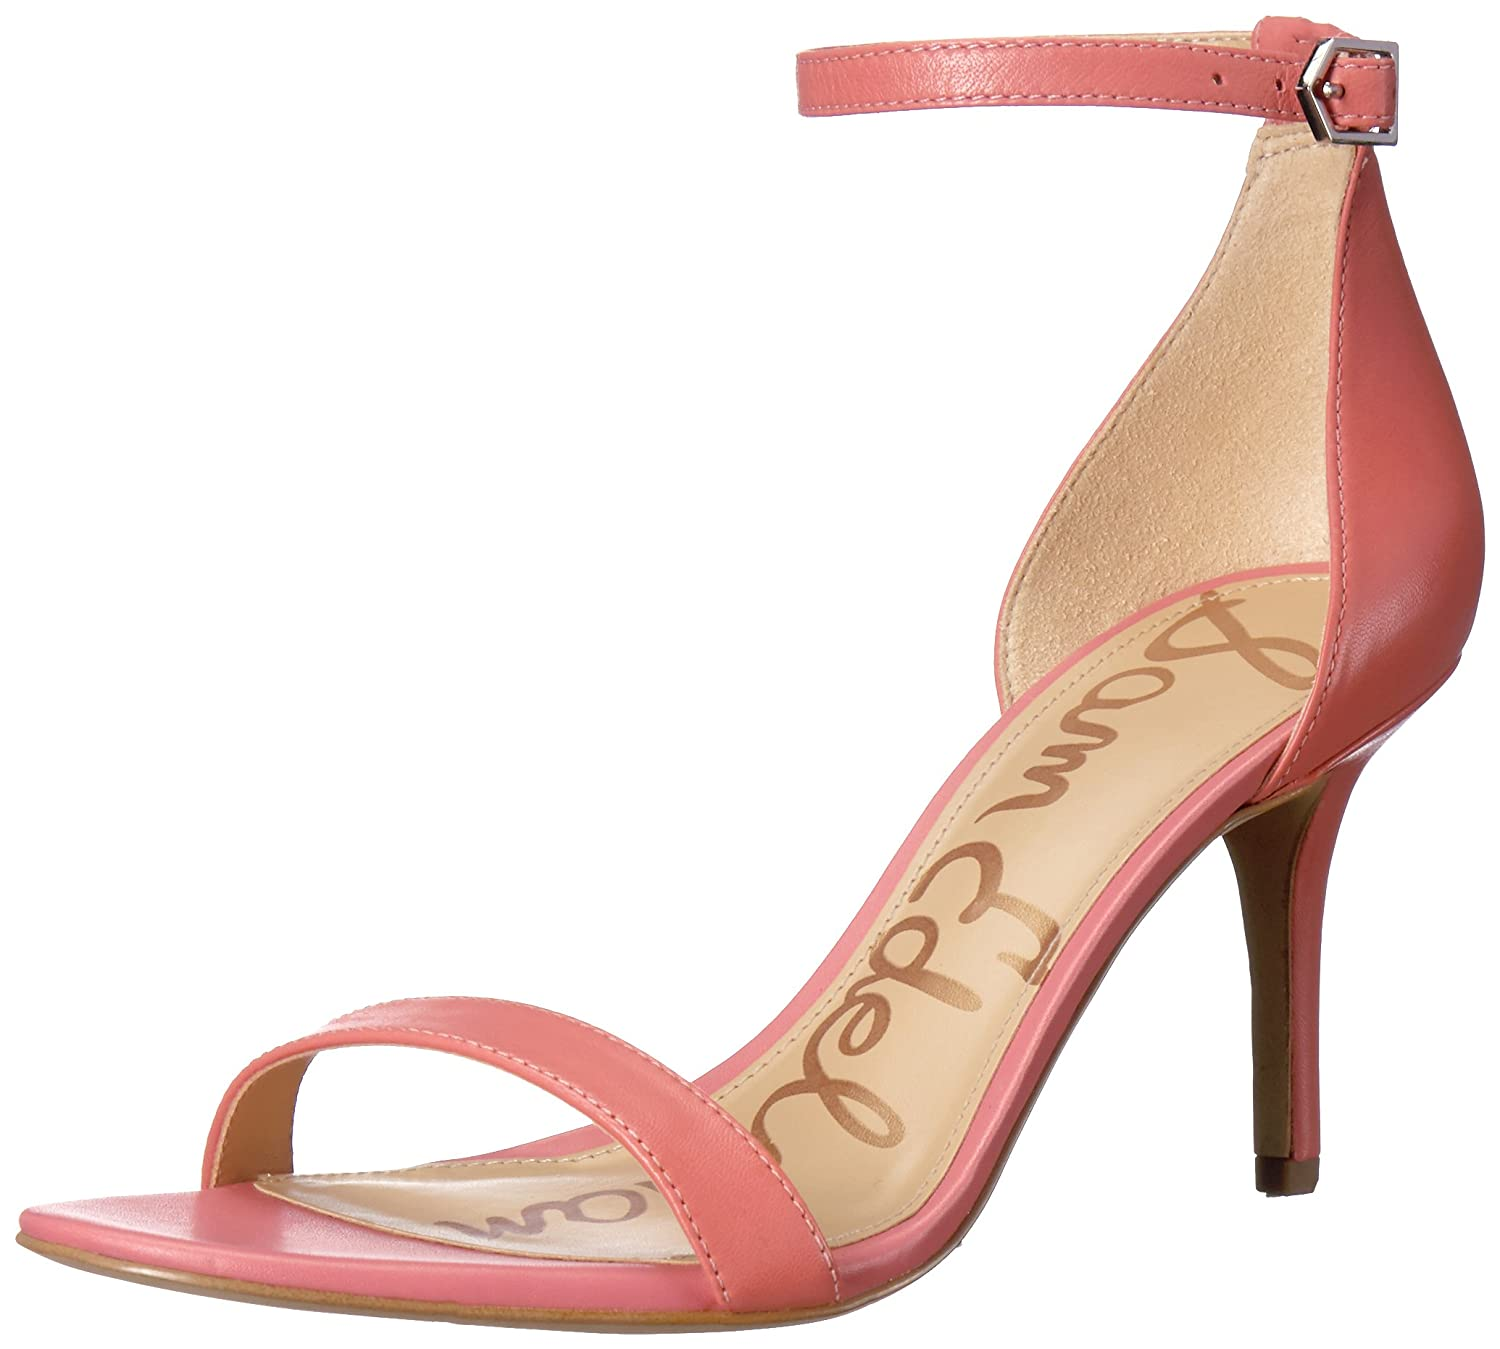 Sam Edelman Women's Patti Dress Sandal B01LYCHOXC 9.5 B(M) US|Sugar Pink Leather